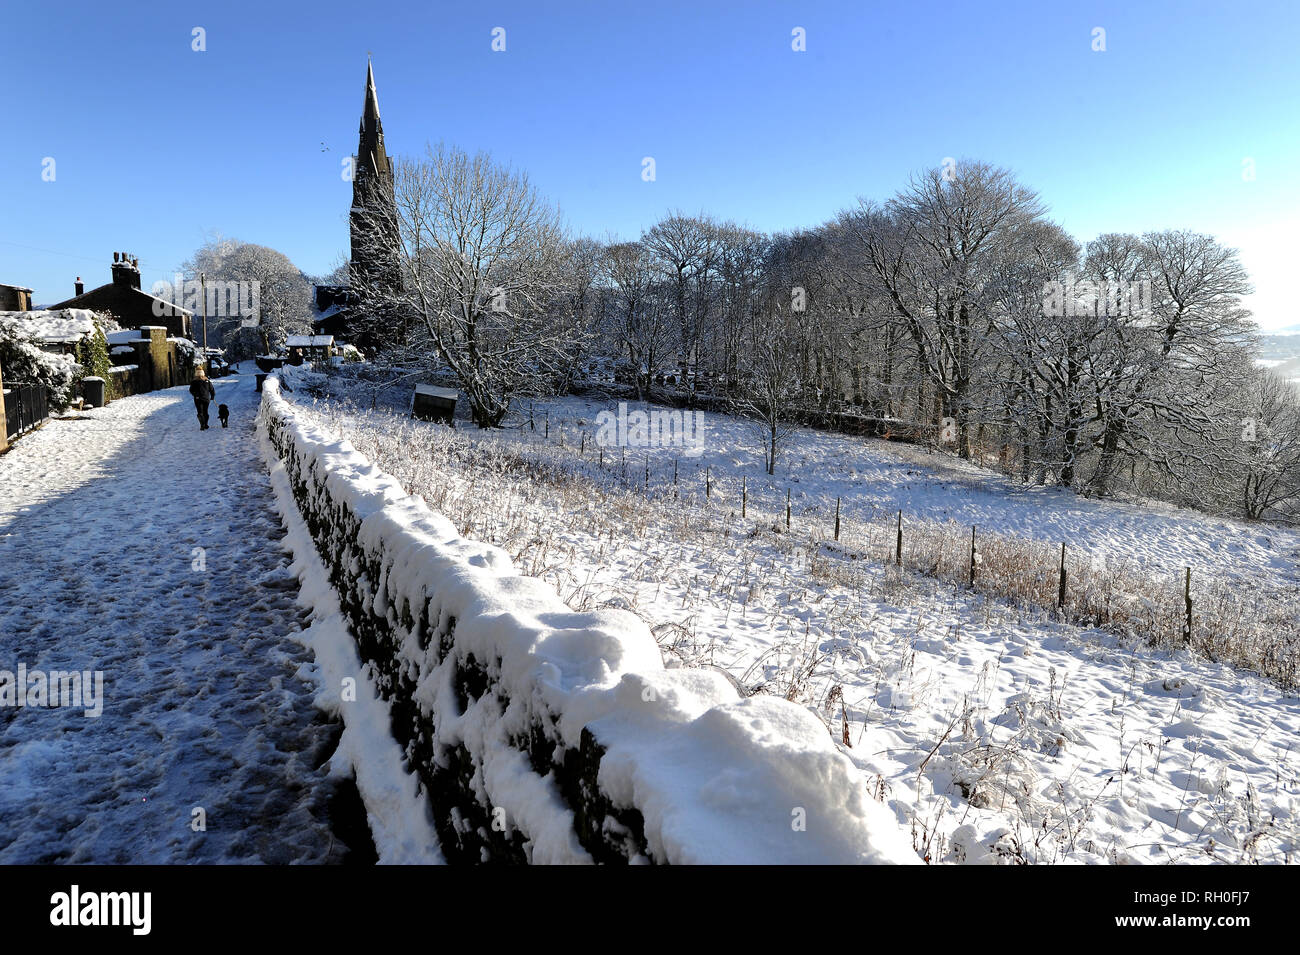 Ramsbottom, Lancashire. 31st Jan 2019. UK Weather: Parts of Lancashire look more like the Swiss Alps today as the snow covered landscape creates a picture postcard winter wonderland scene around Holcombe Hill and village near Ramsbottom, Lancashire. Picture by Credit: Paul Heyes/Alamy Live News - Stock Image